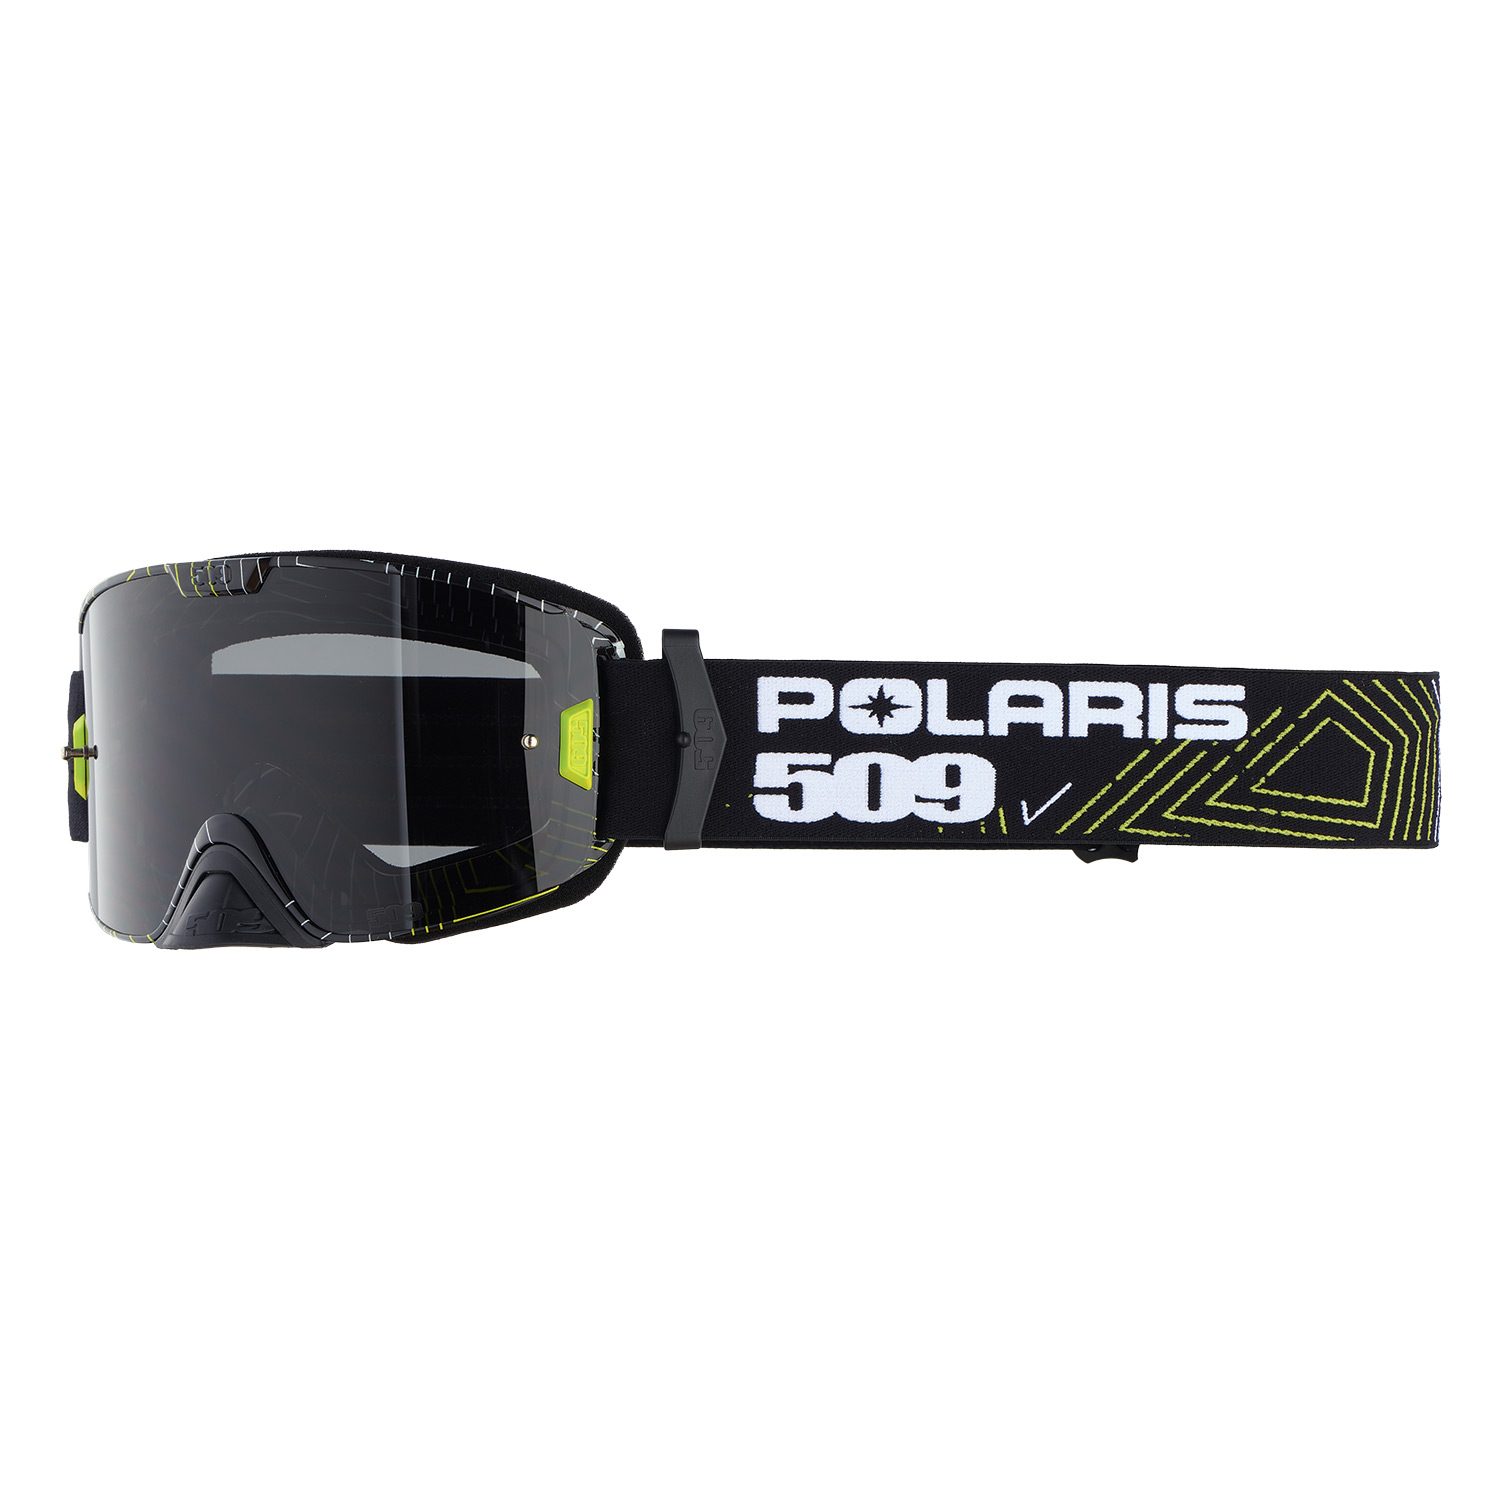 509® Kingpin Dirt Adult Goggle with Anti-Fog Coating, Lime